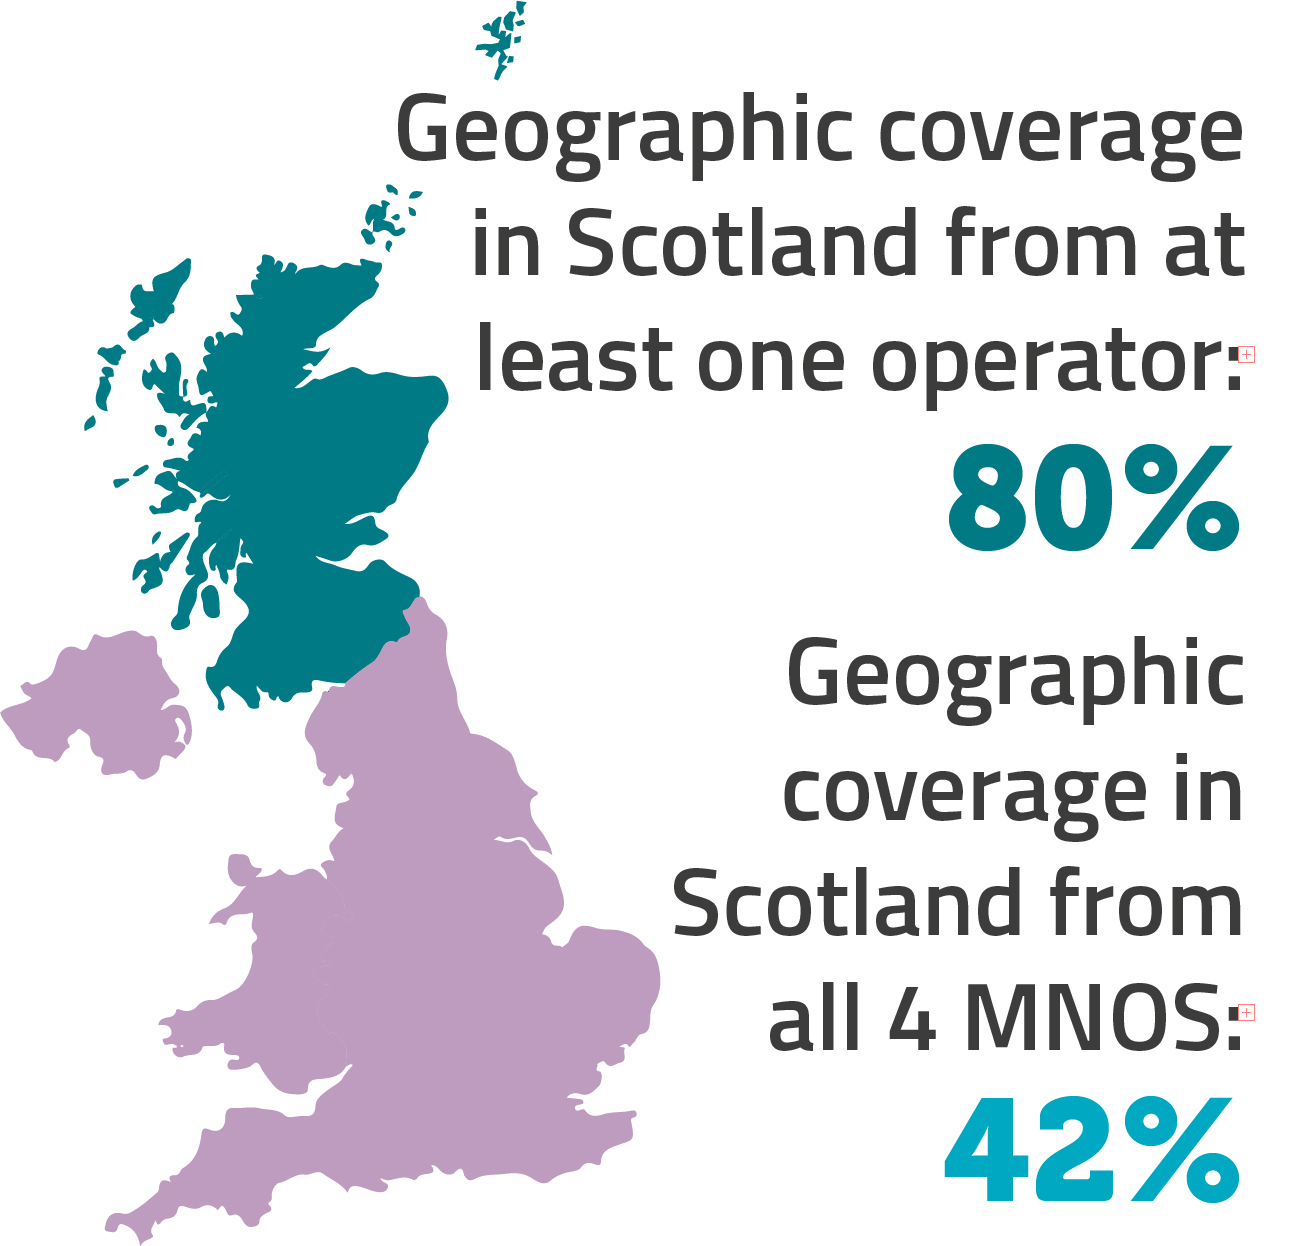 Operators' geographic coverage in Scotland. 80% of Scotland's landmass is covered by at least one operator, while all four major operators cover 42%.